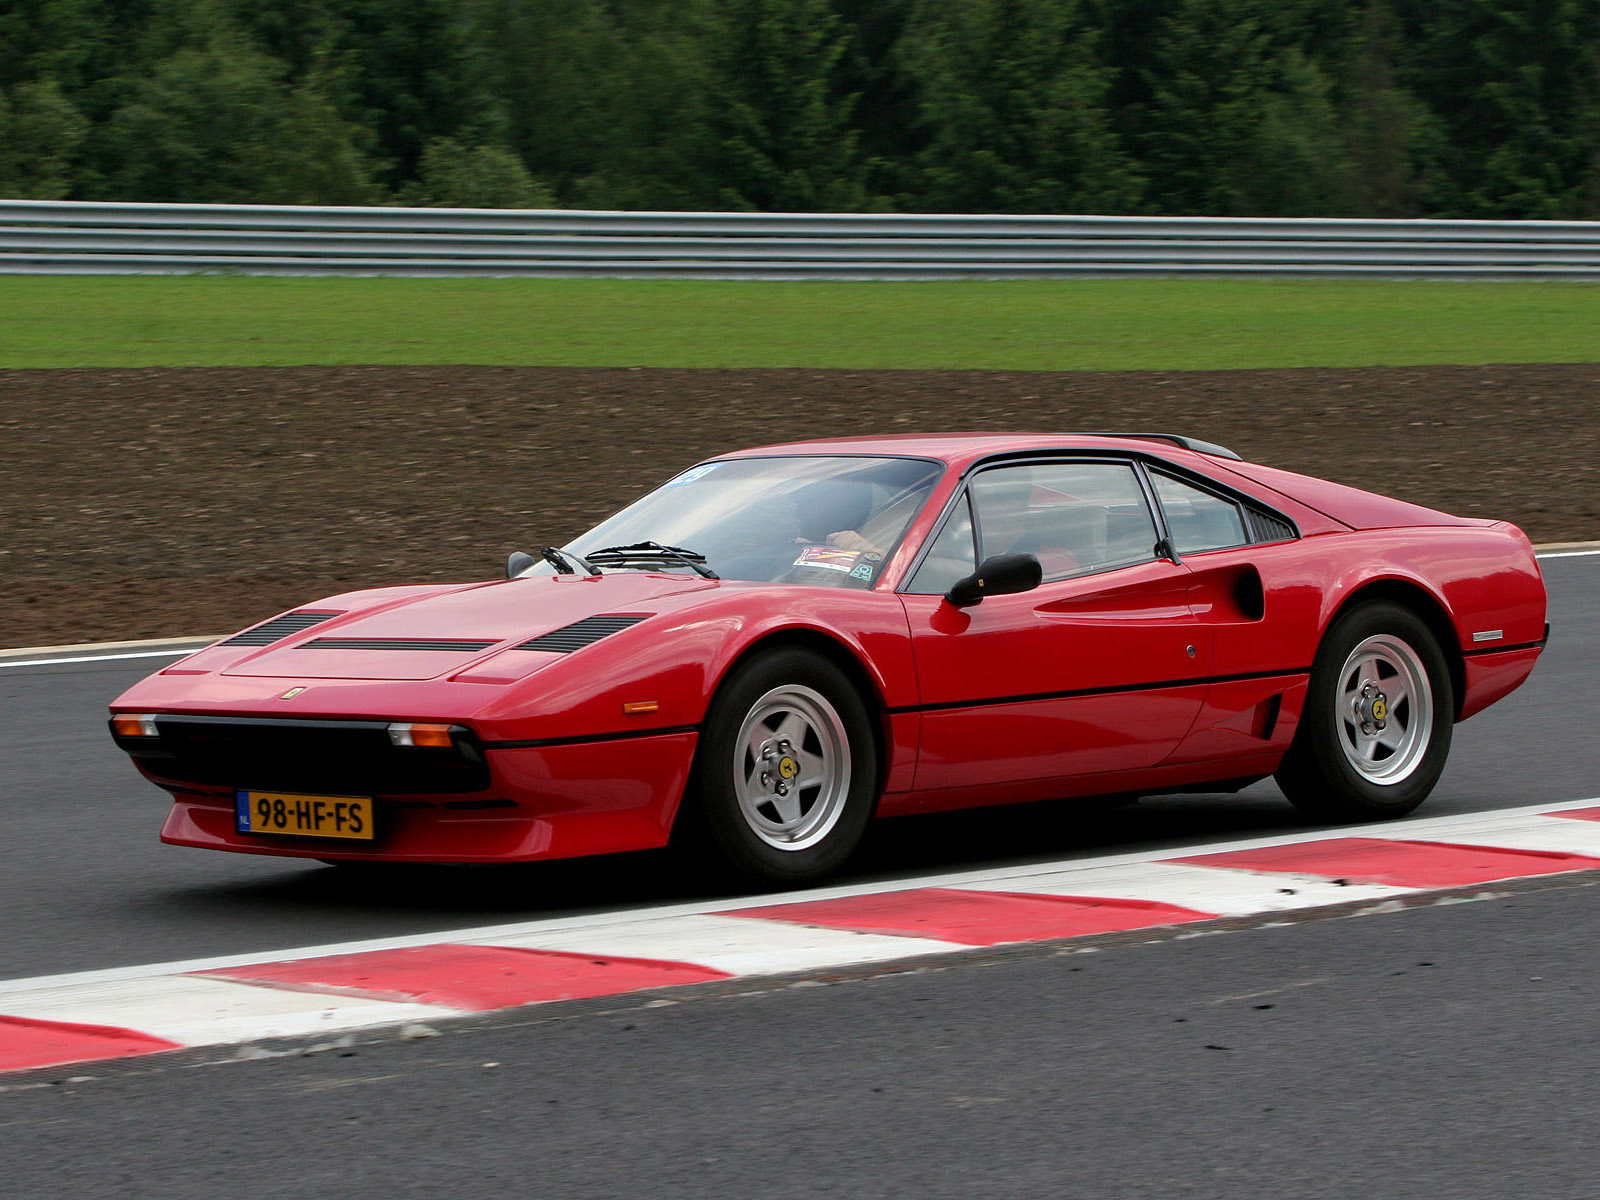 Ferrari 208 GTB Turbo 1982-1985 Ferrari 208 GTB Turbo 1982-1985 Photo ...